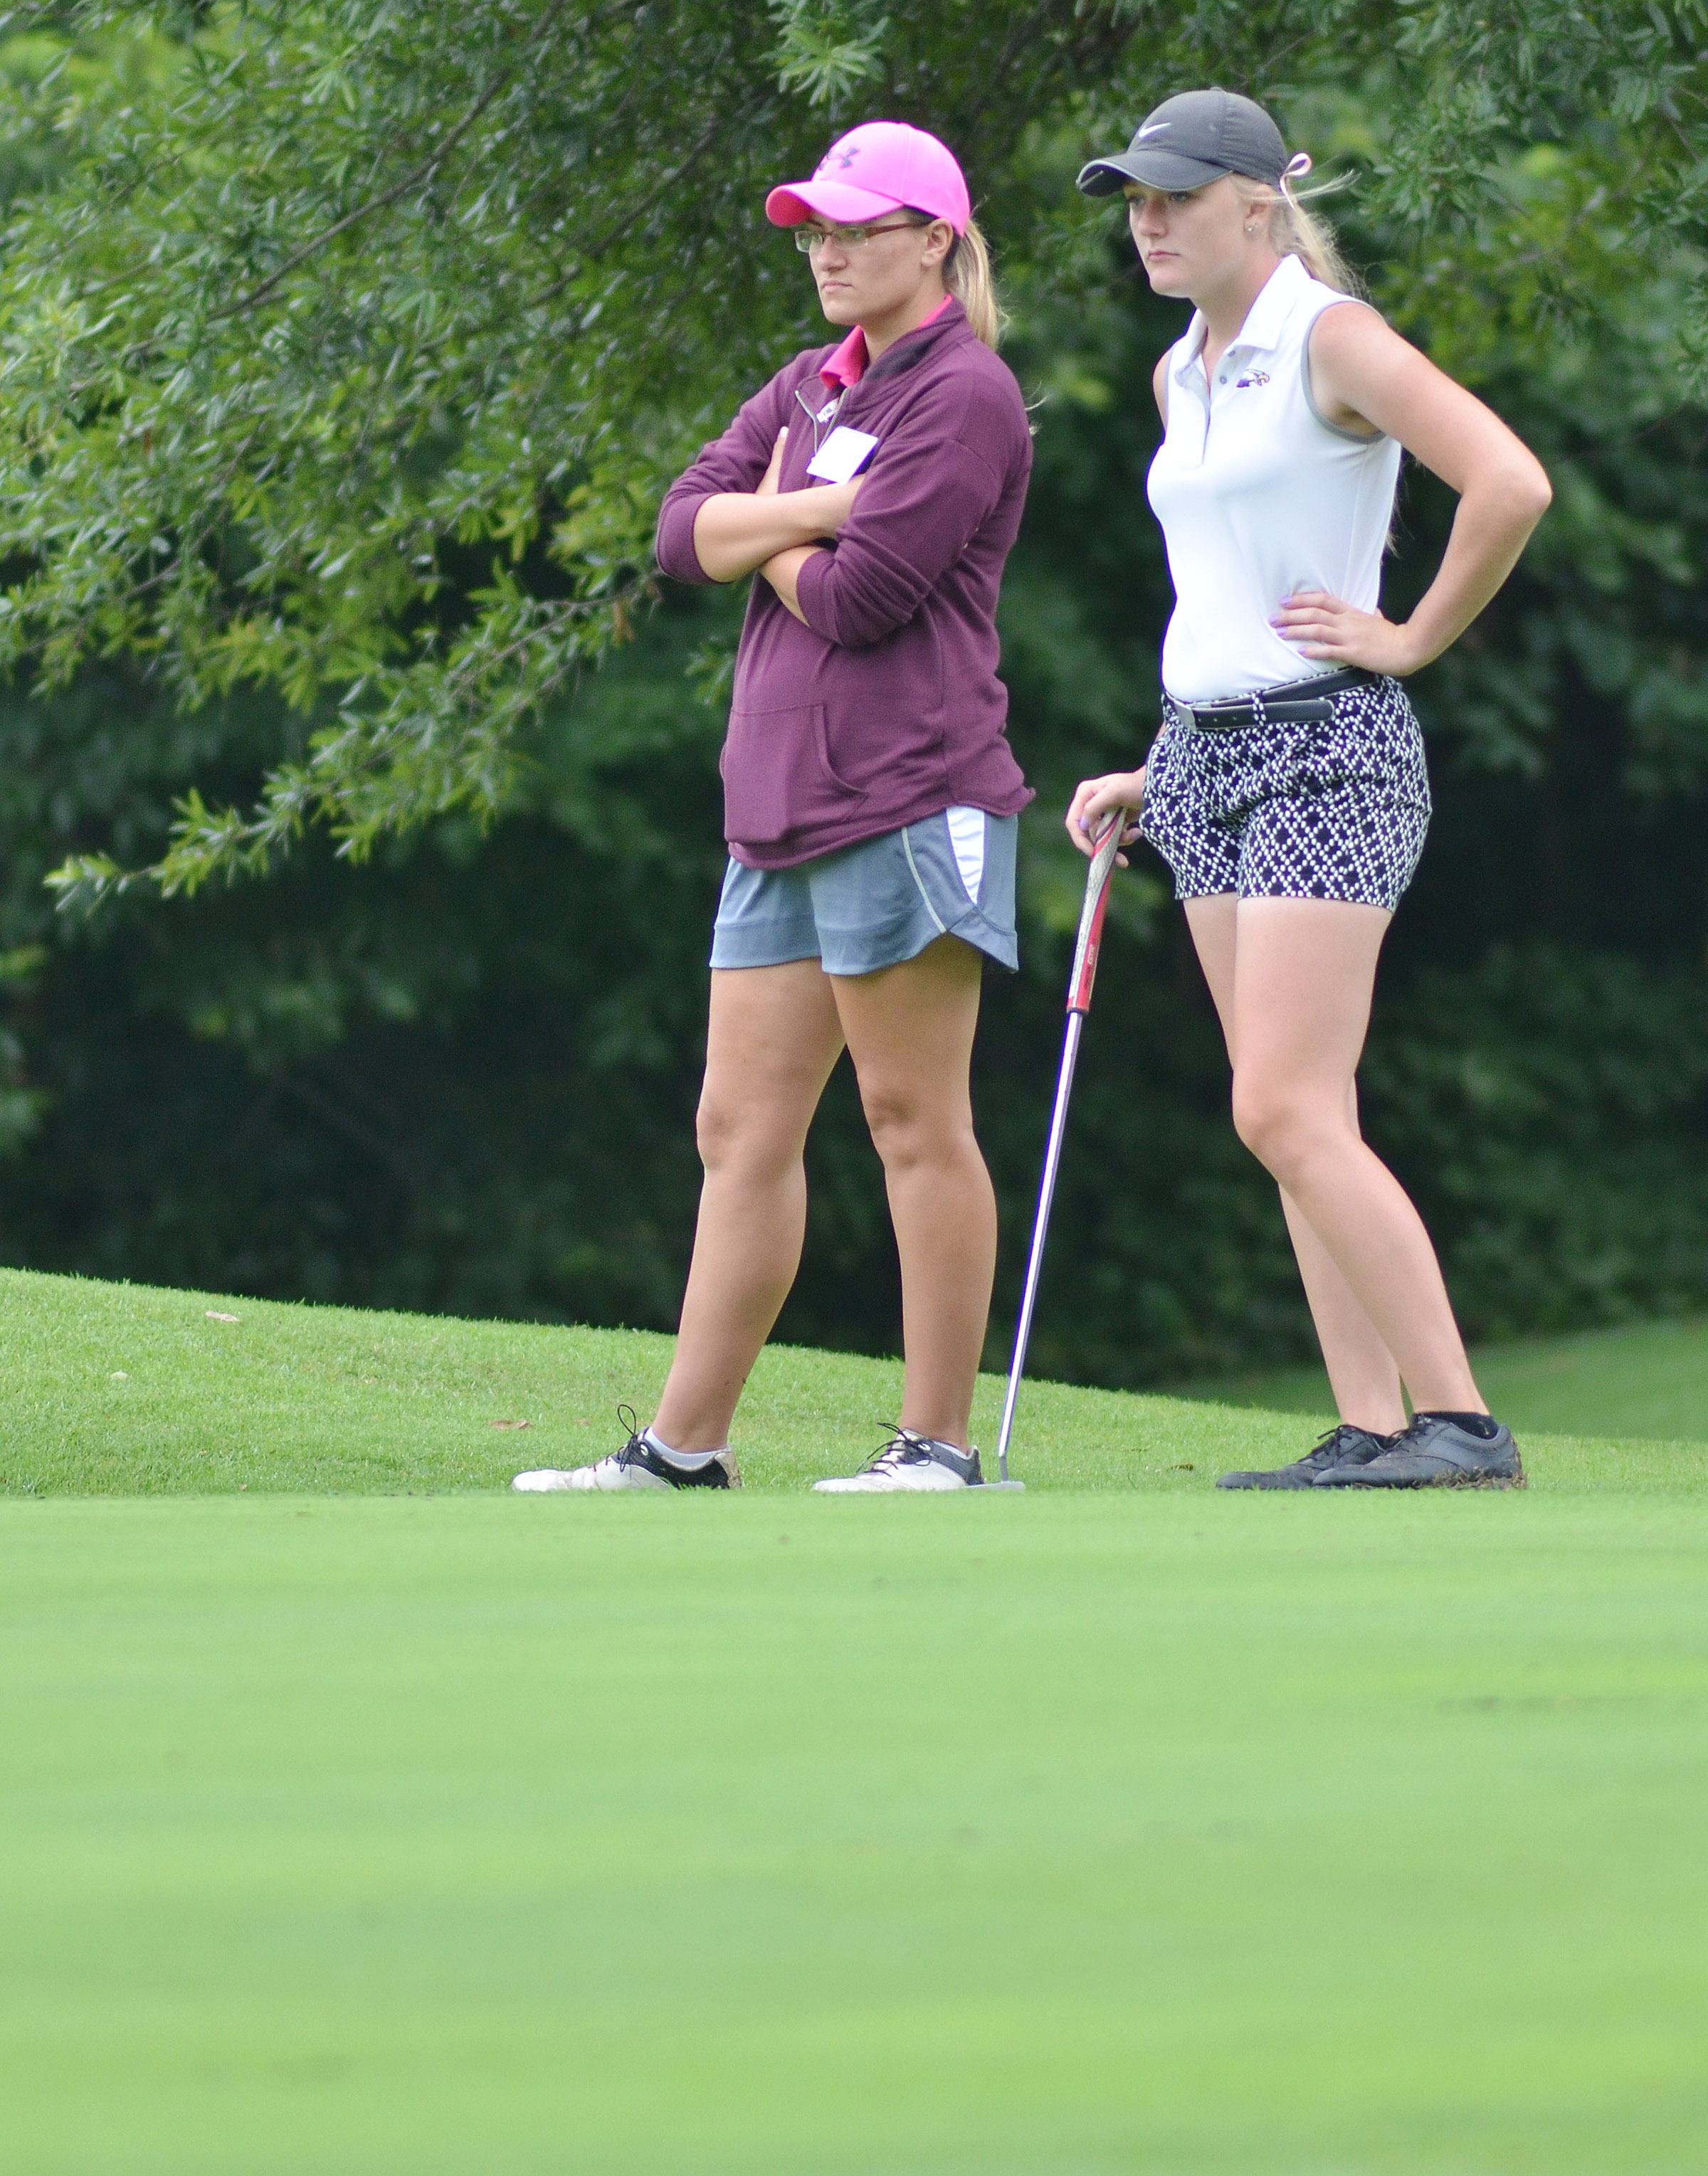 CHS junior Abbie Dicken talks to coach Ashley Goodin as she gets set to putt.